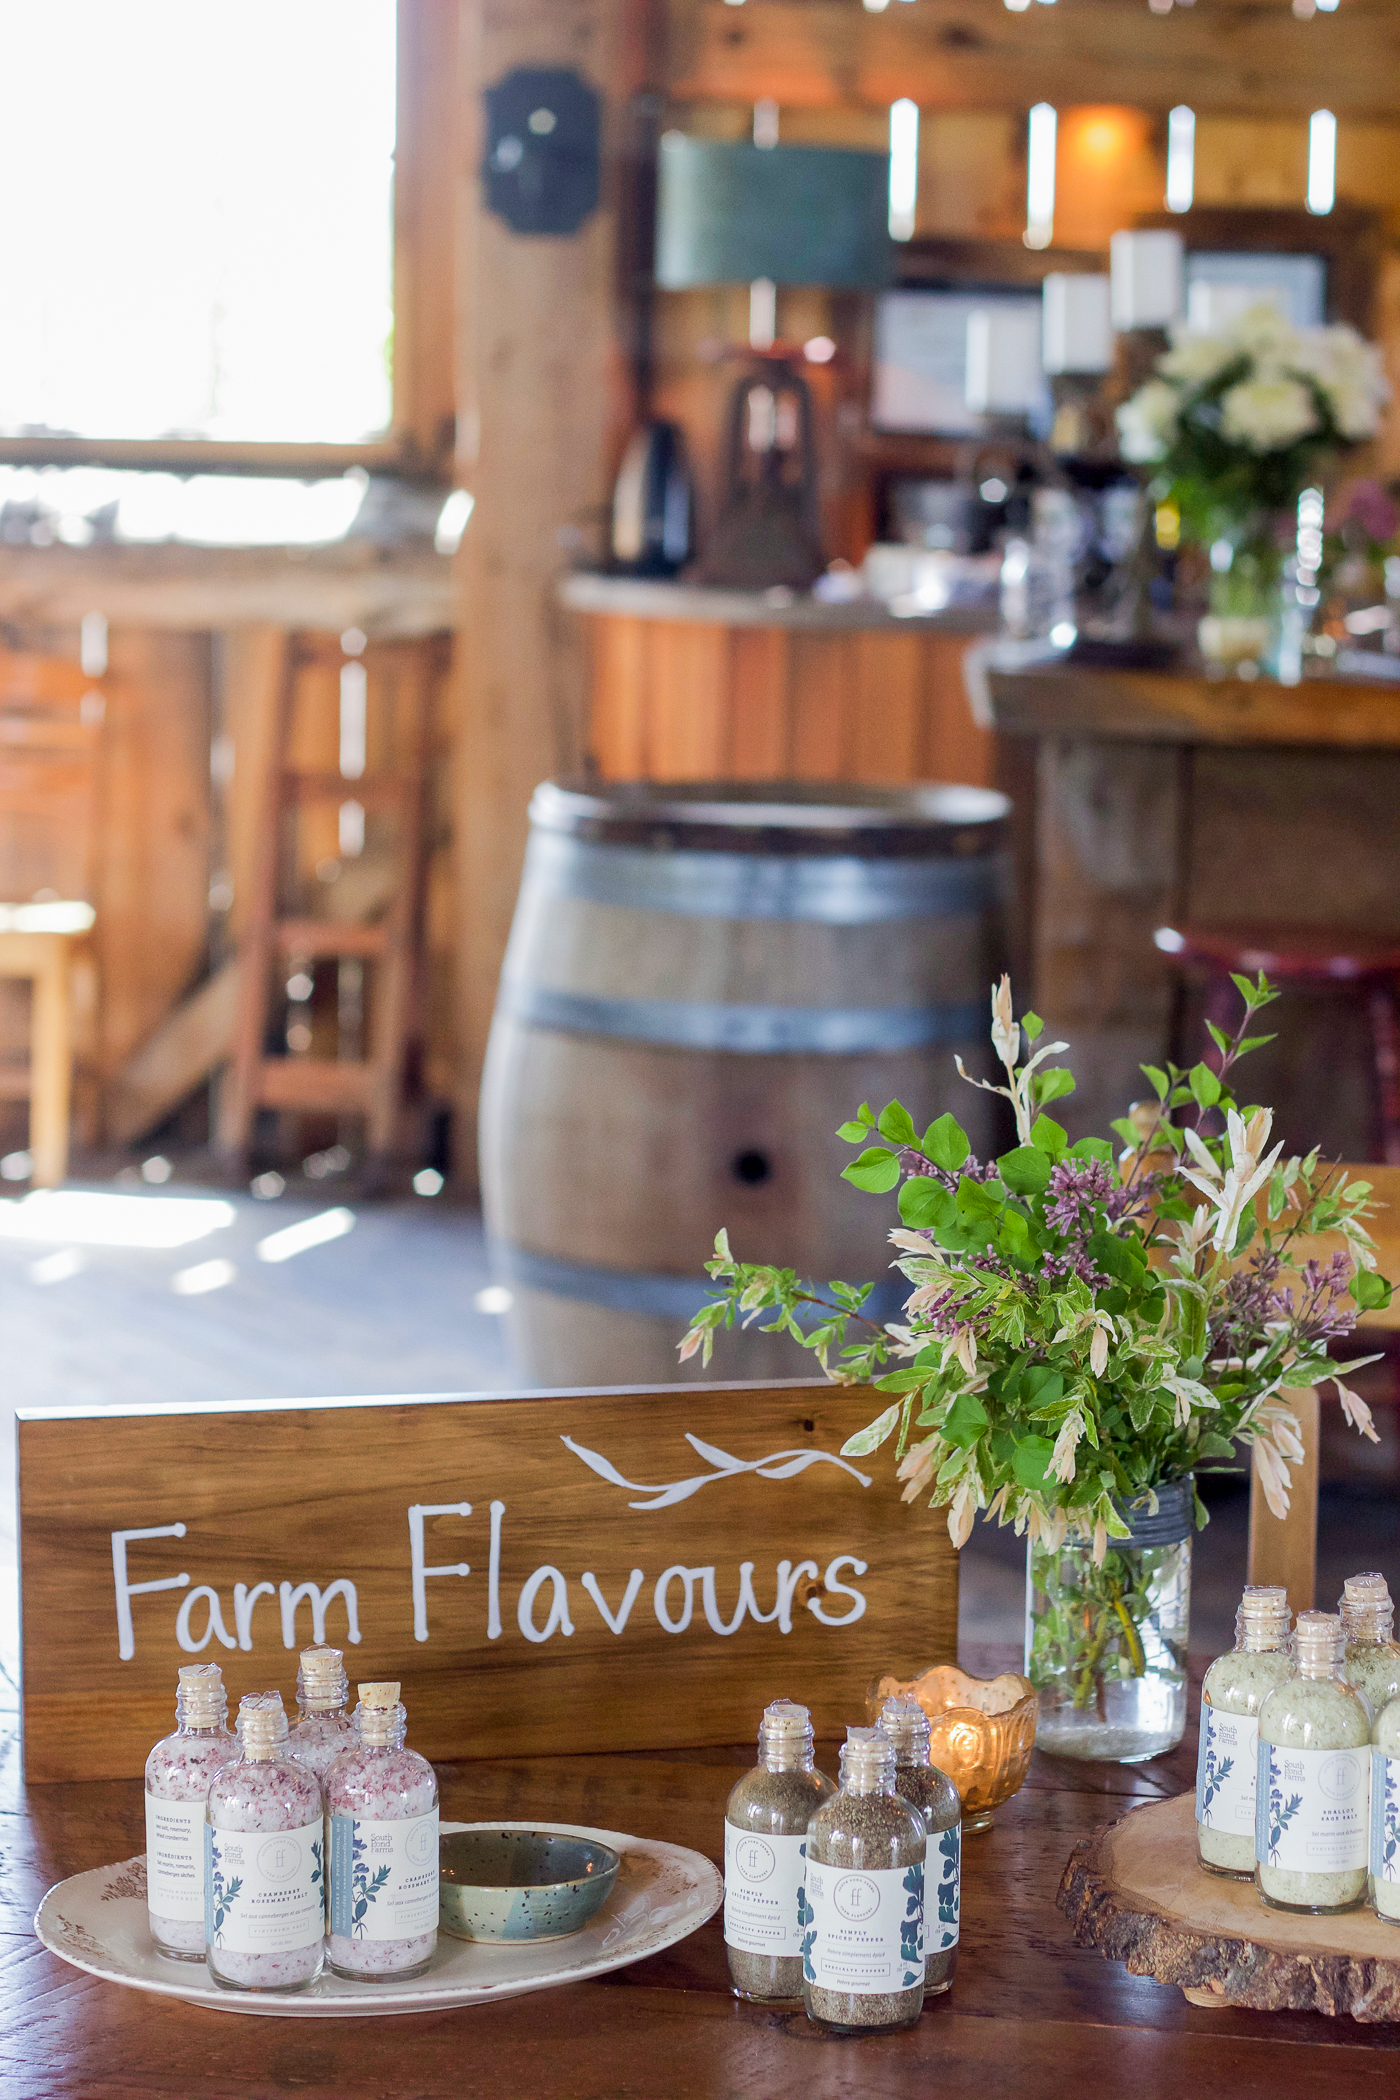 the local farm flavours and rustic tablescape at south pond farms outside of toronto